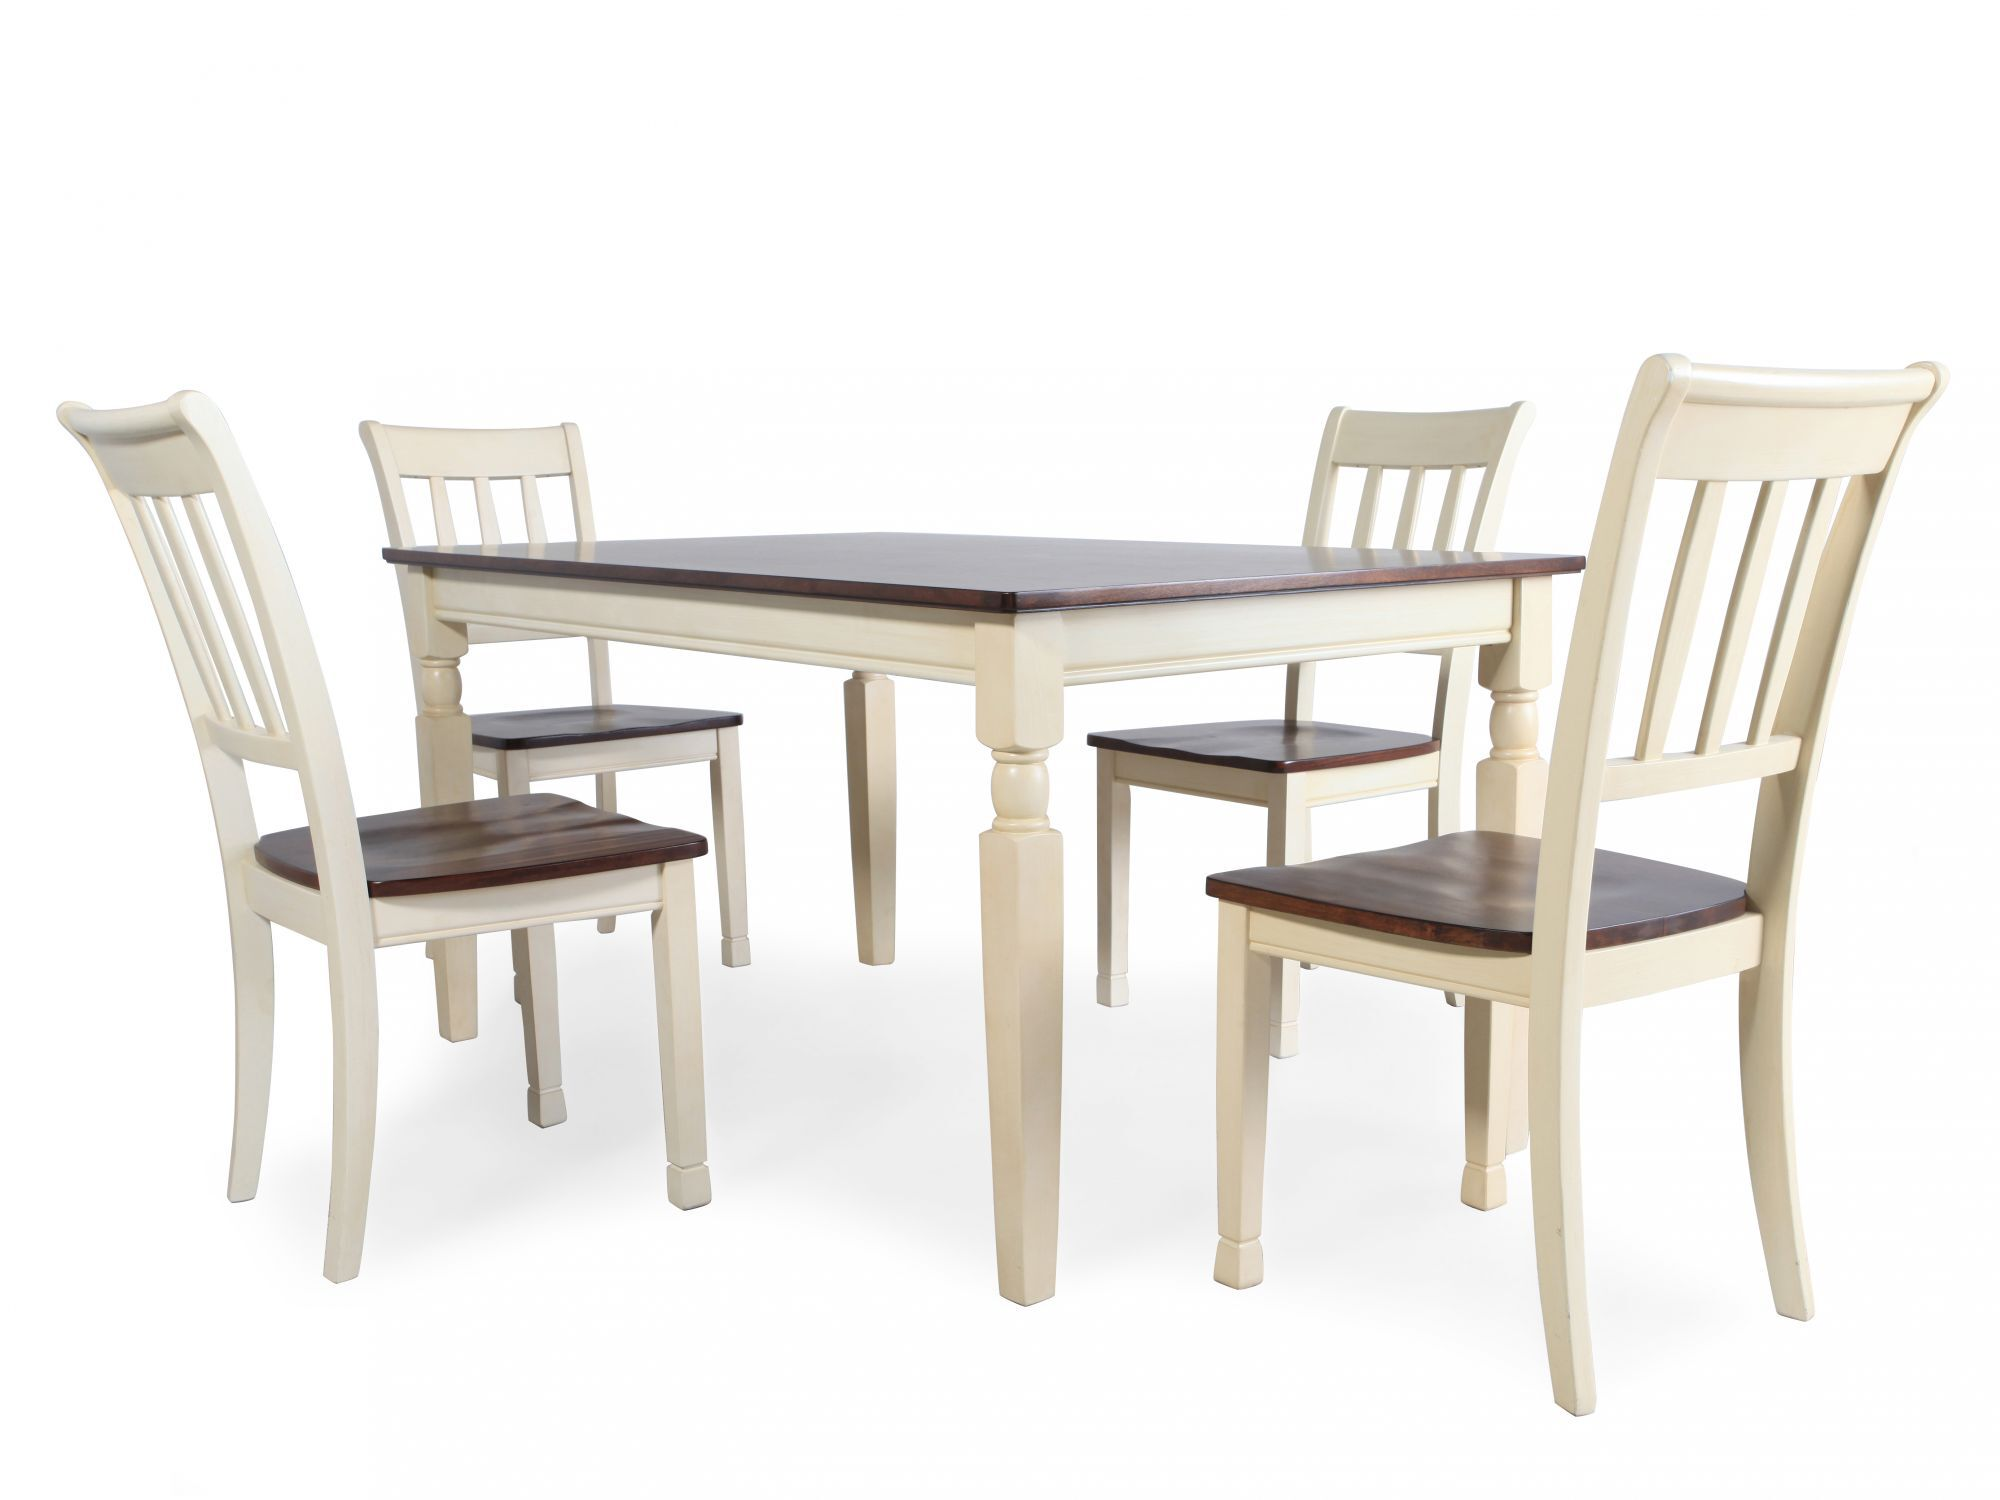 Five Piece Cottage Dining Set In Buttermilk